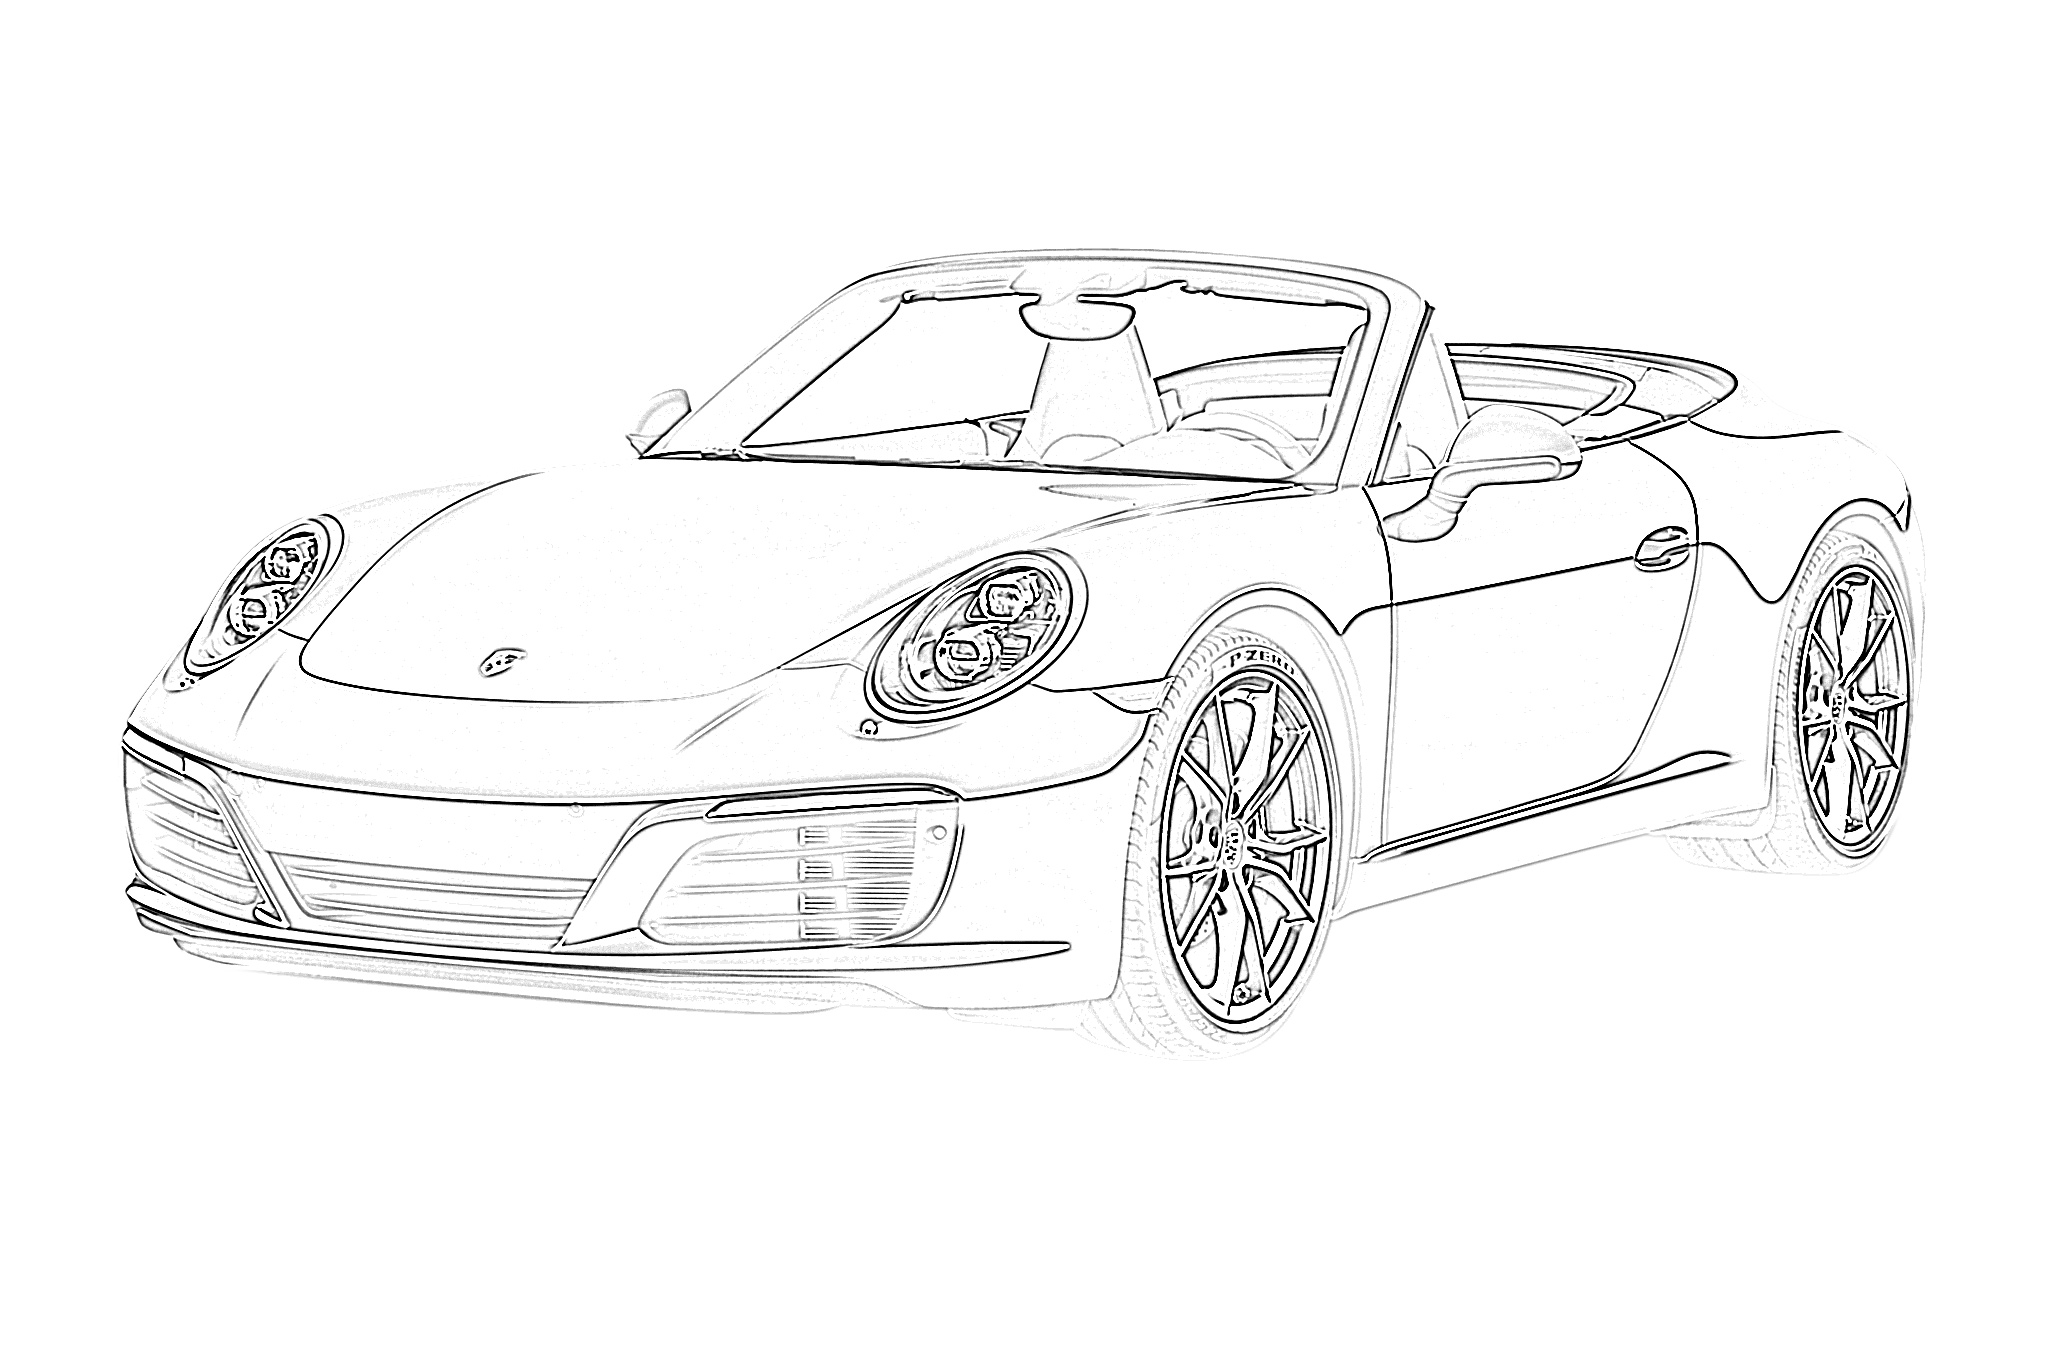 coloring pages cars free printable car coloring pages for kids art hearty cars pages coloring